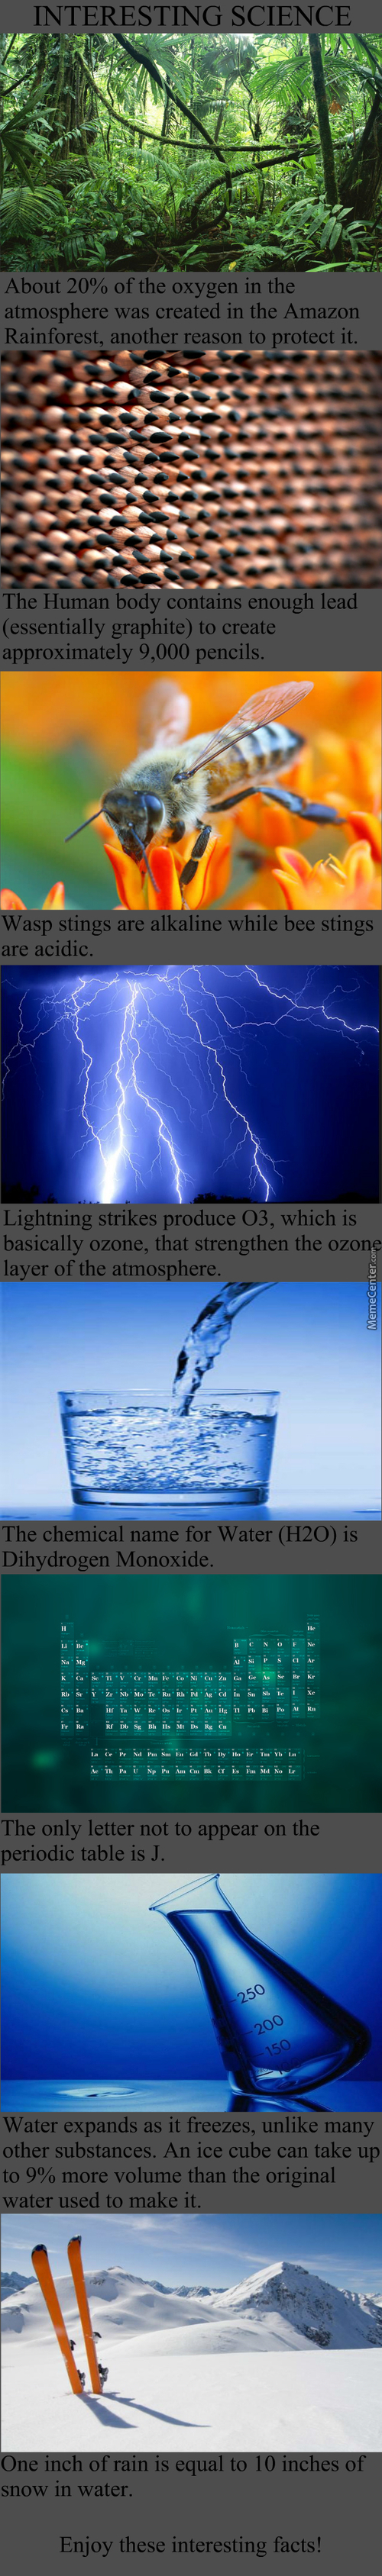 Interesting Science #1